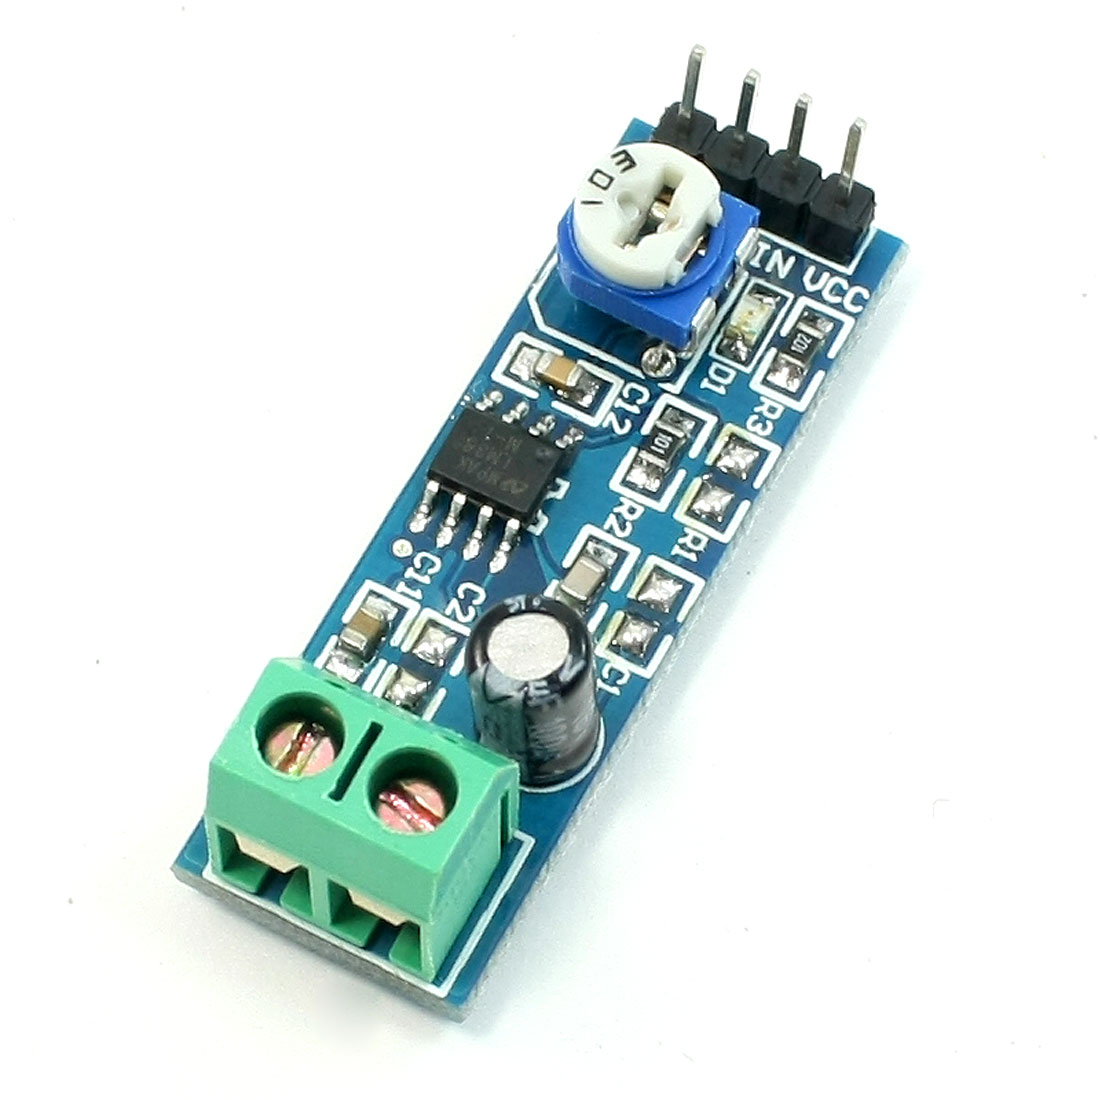 5V-12V LM386 Chip 20 Multiplier Gain Audio Amplifier Module